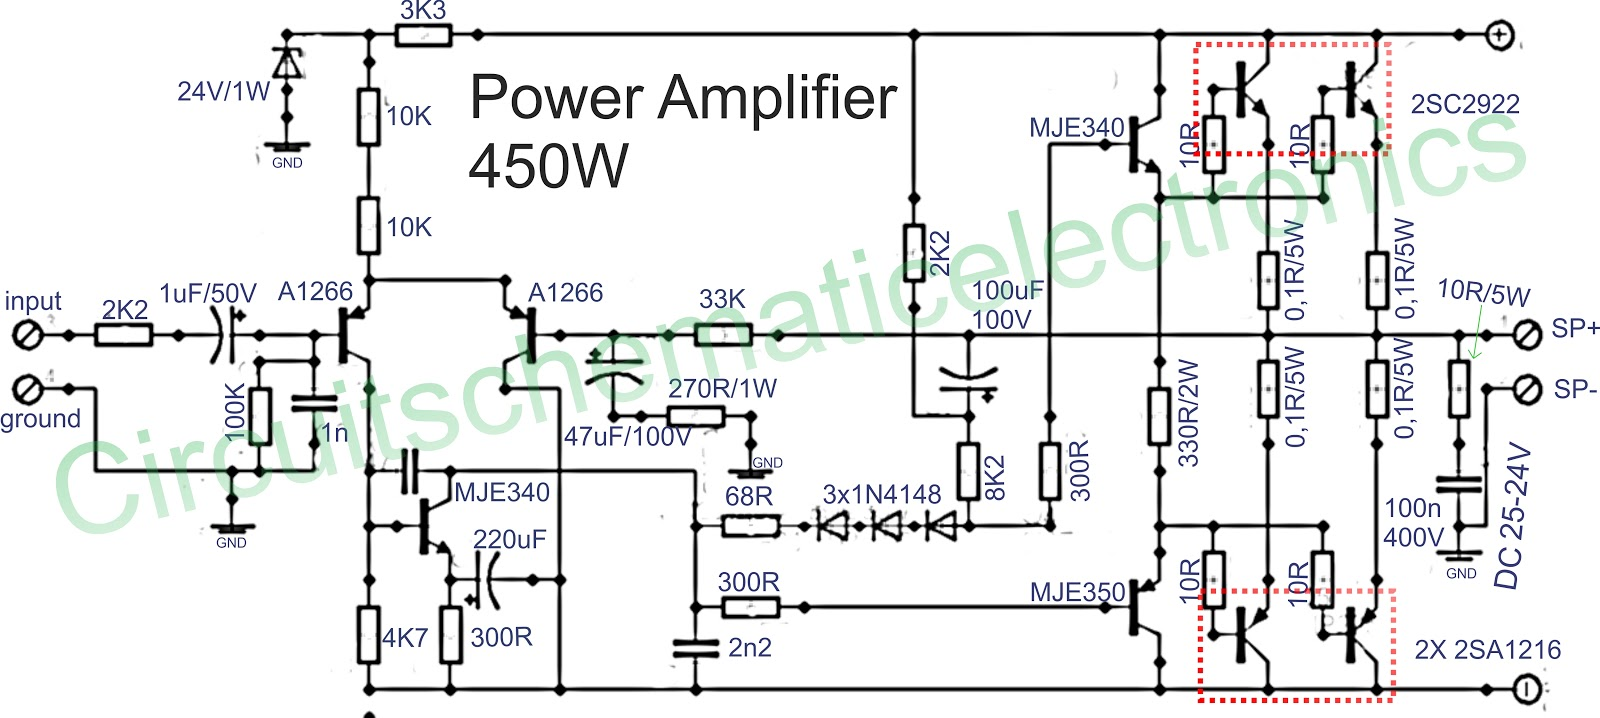 subwoofer amplifier circuit diagrams download wiring library Subwoofer Amplifier Gate Driver Circuit power amplifier 450w with sanken